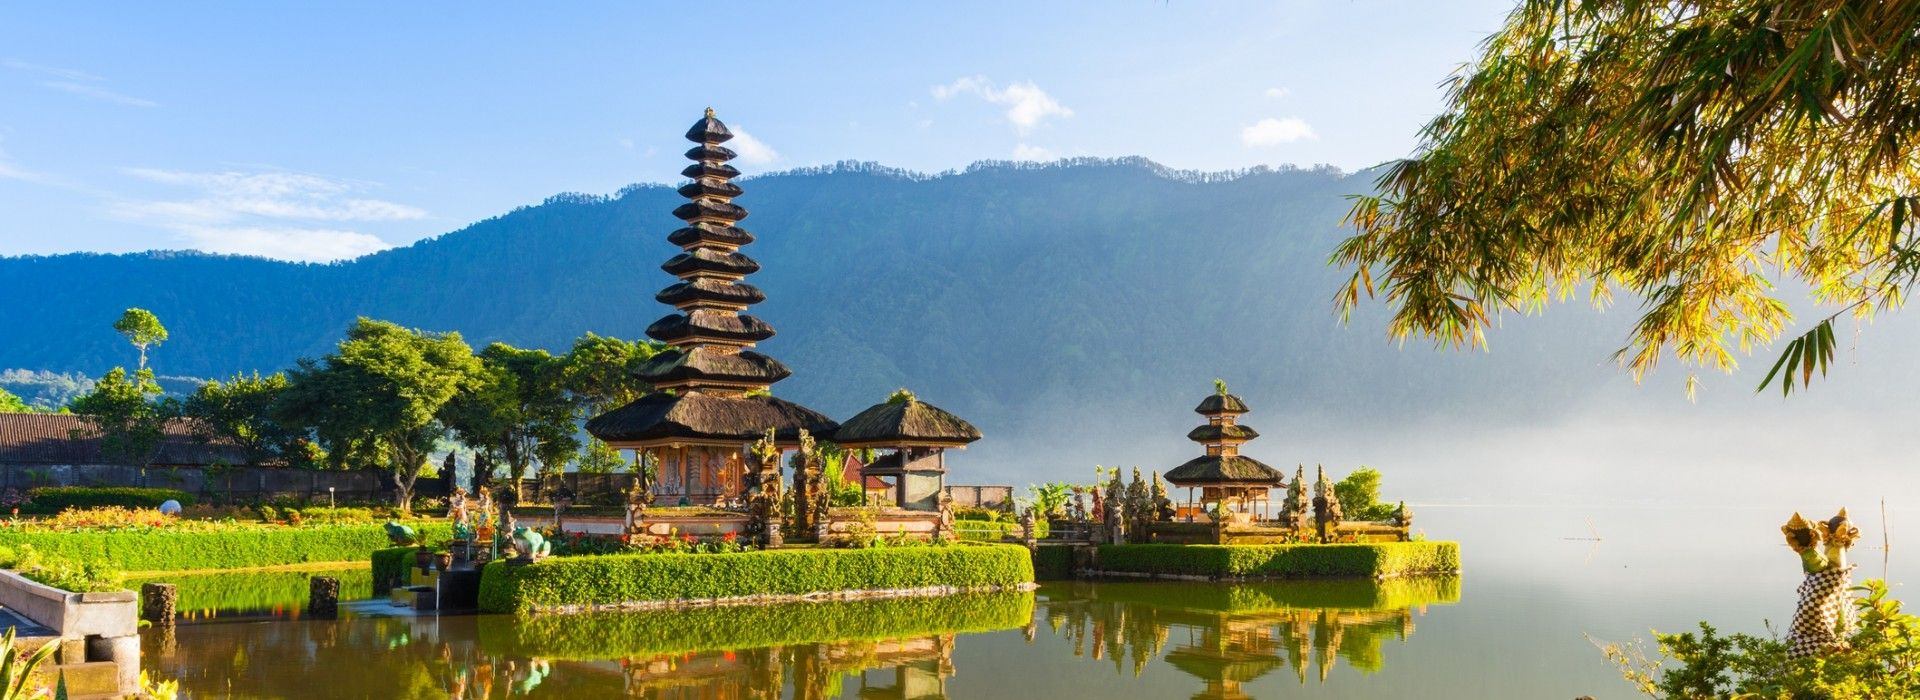 Honeymoon Tours in Bali